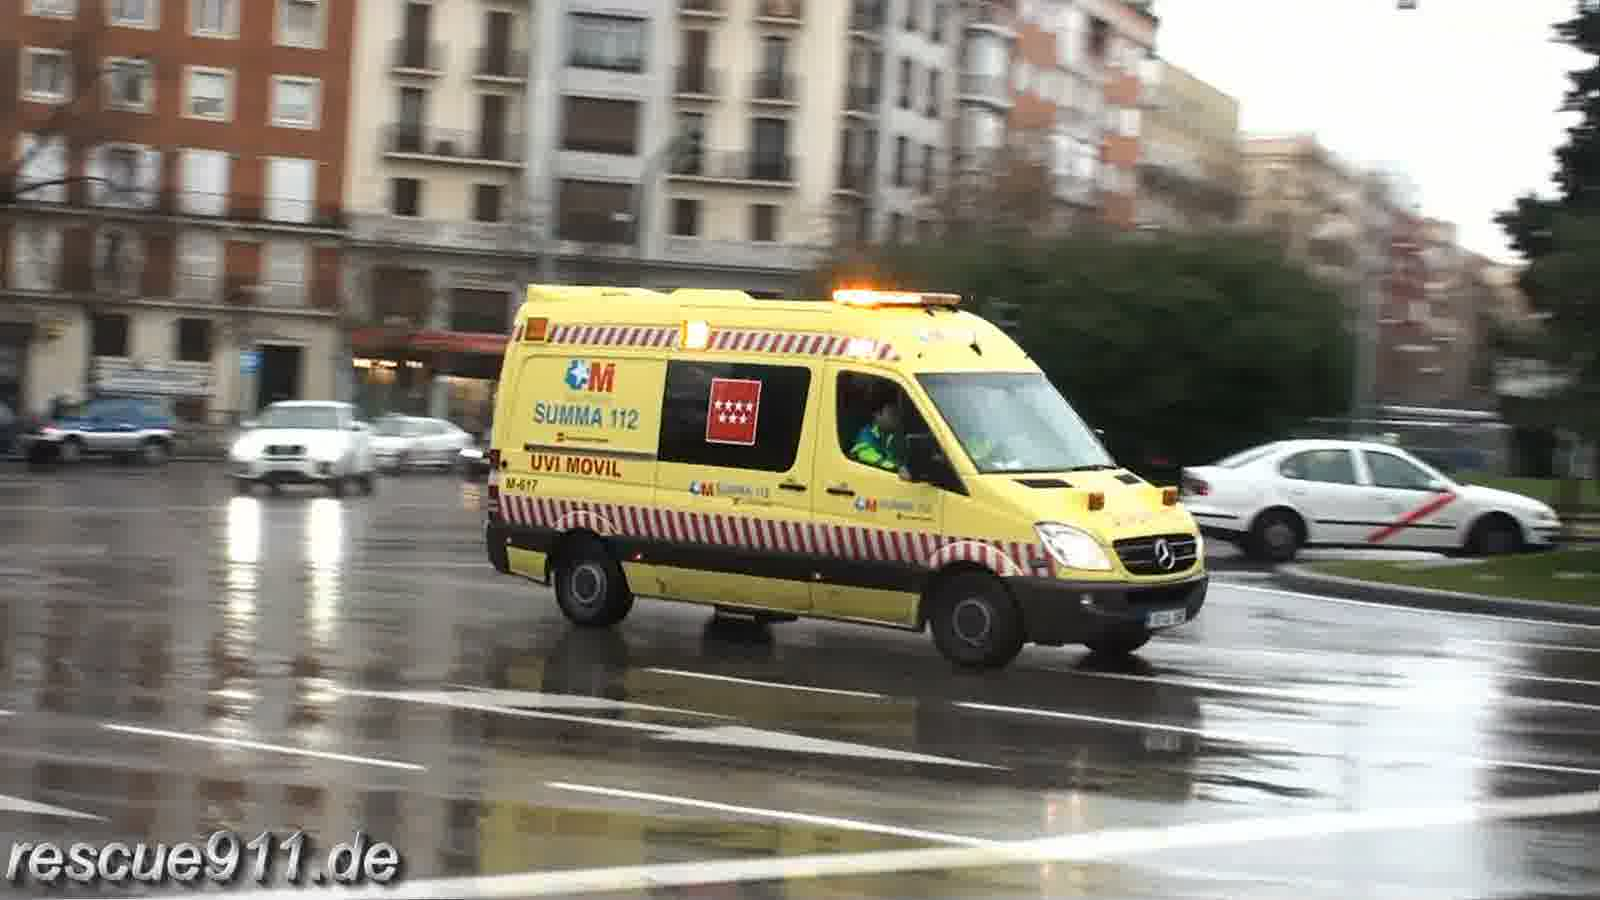 Ambulancia SUMMA Madrid (collection) (stream)